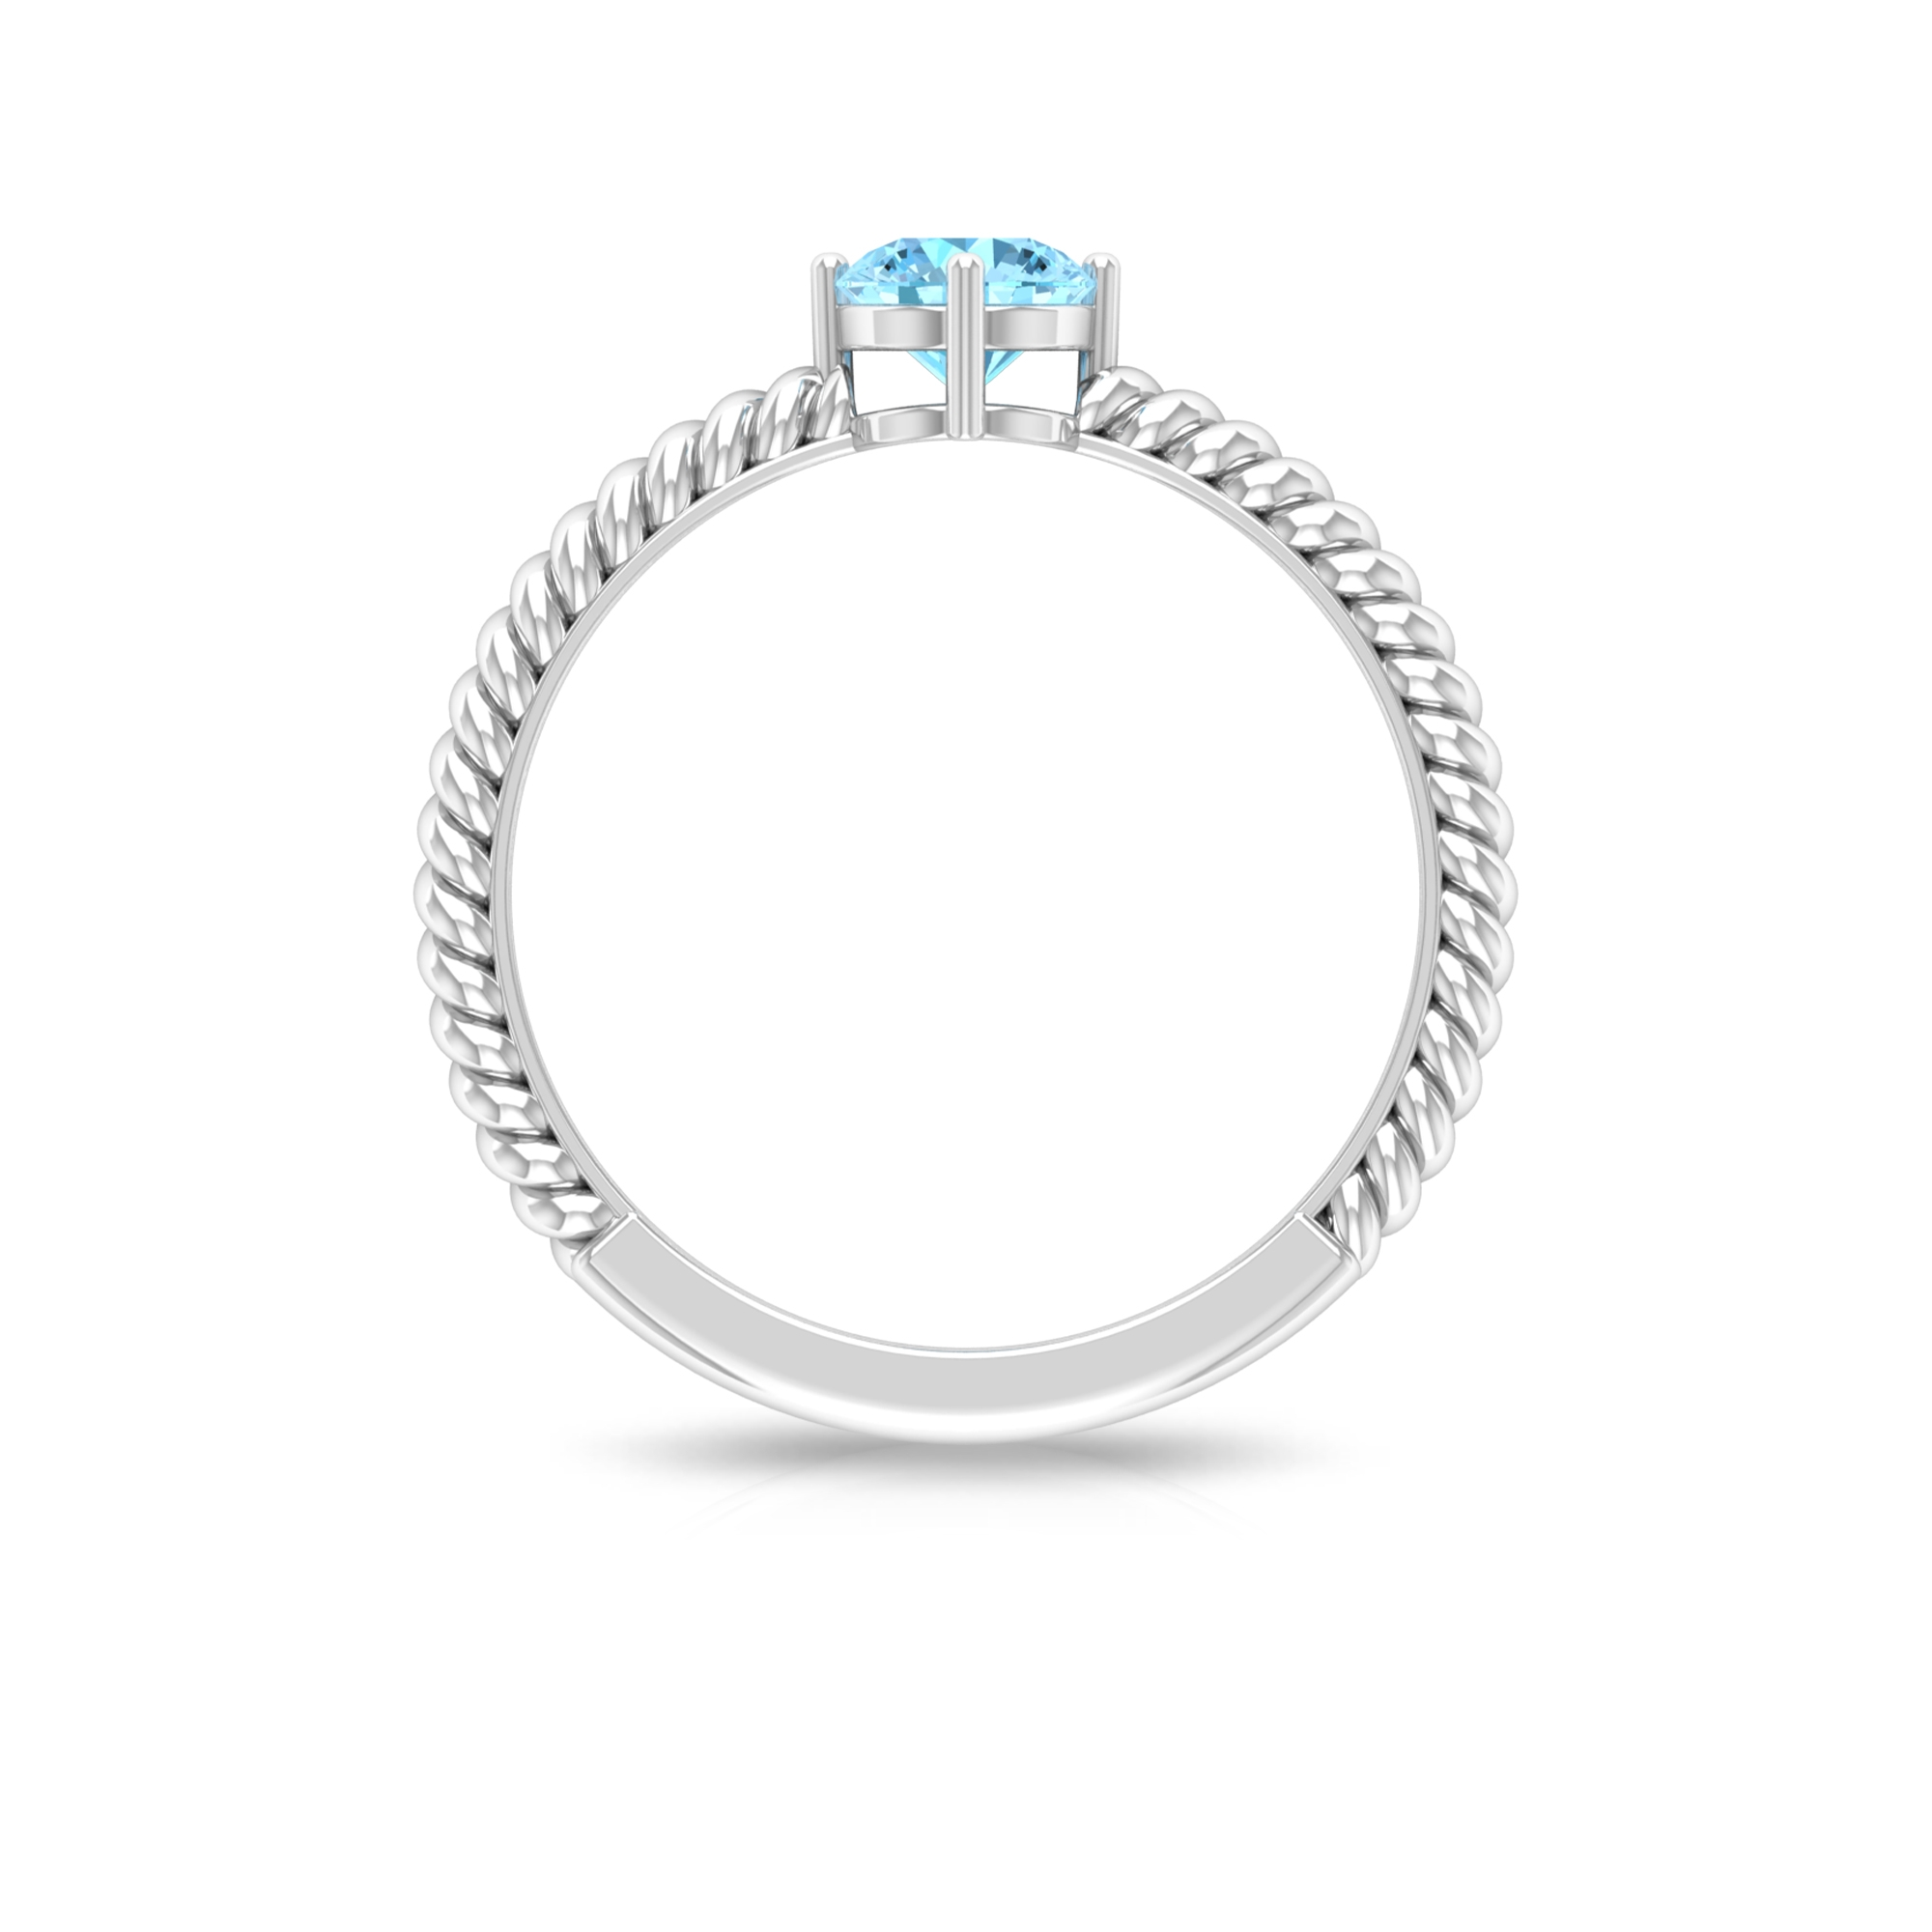 5 MM Four Prong Diagonal Set Round Cut Aquamarine Solitaire Twisted Rope Ring